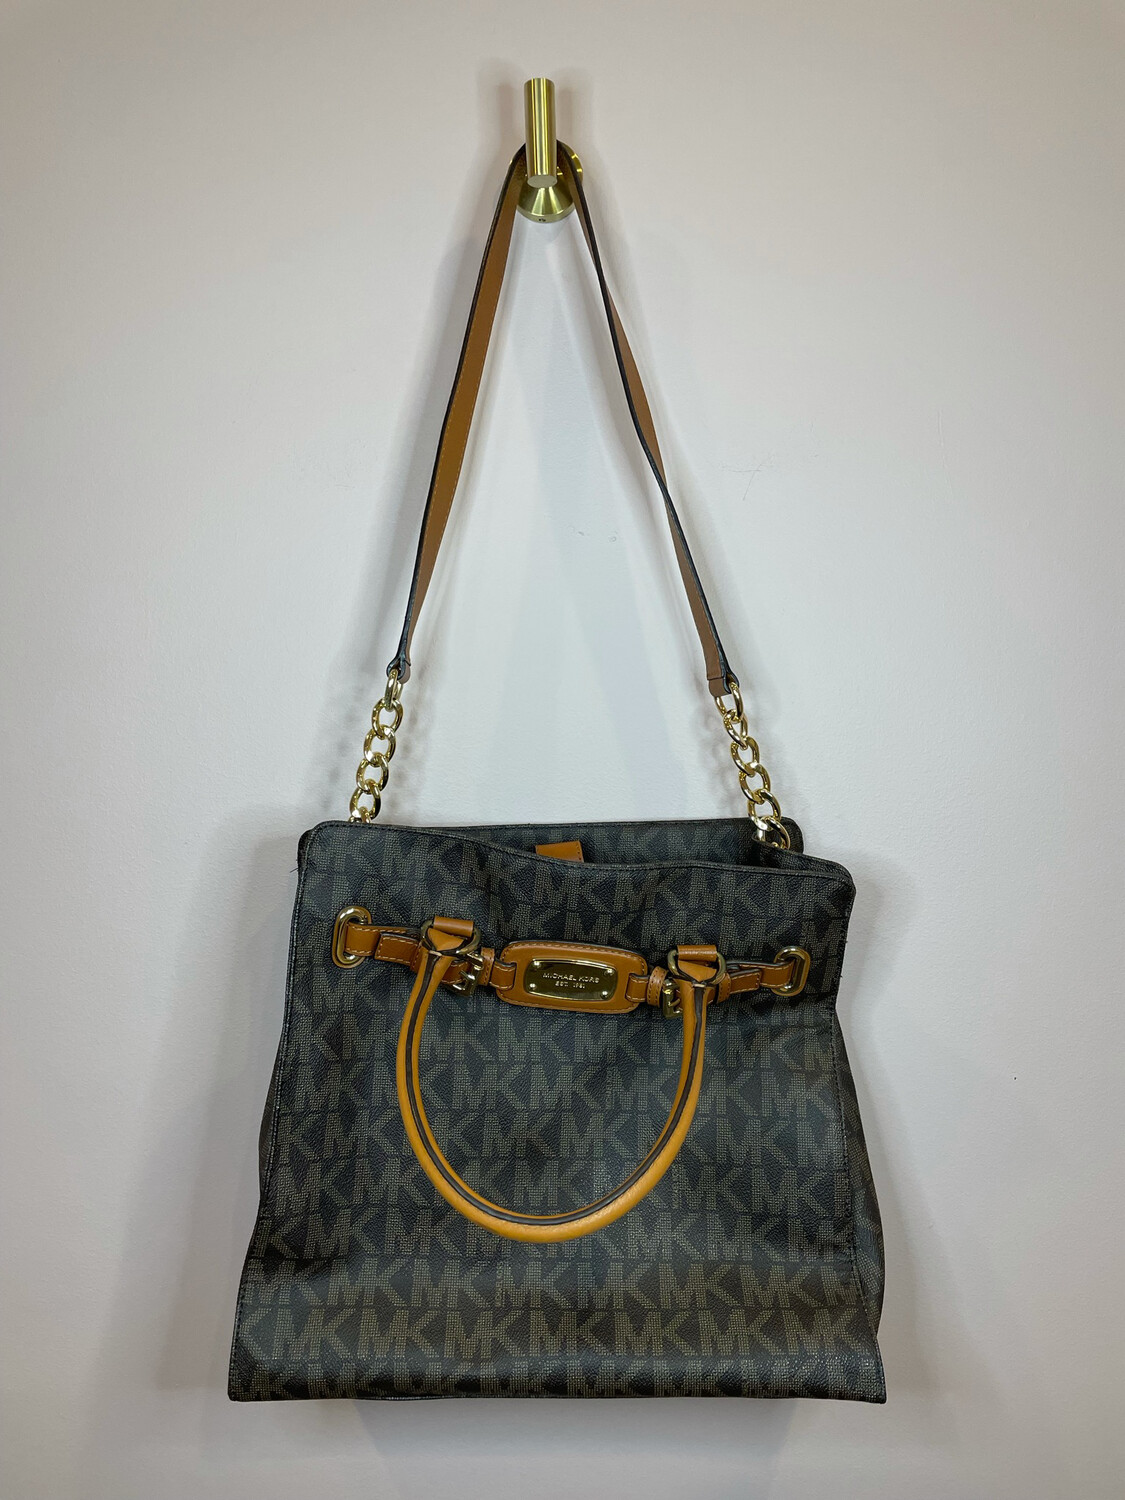 Michael Kors Brown MK Purse w/Brown Leather Buckle Accent